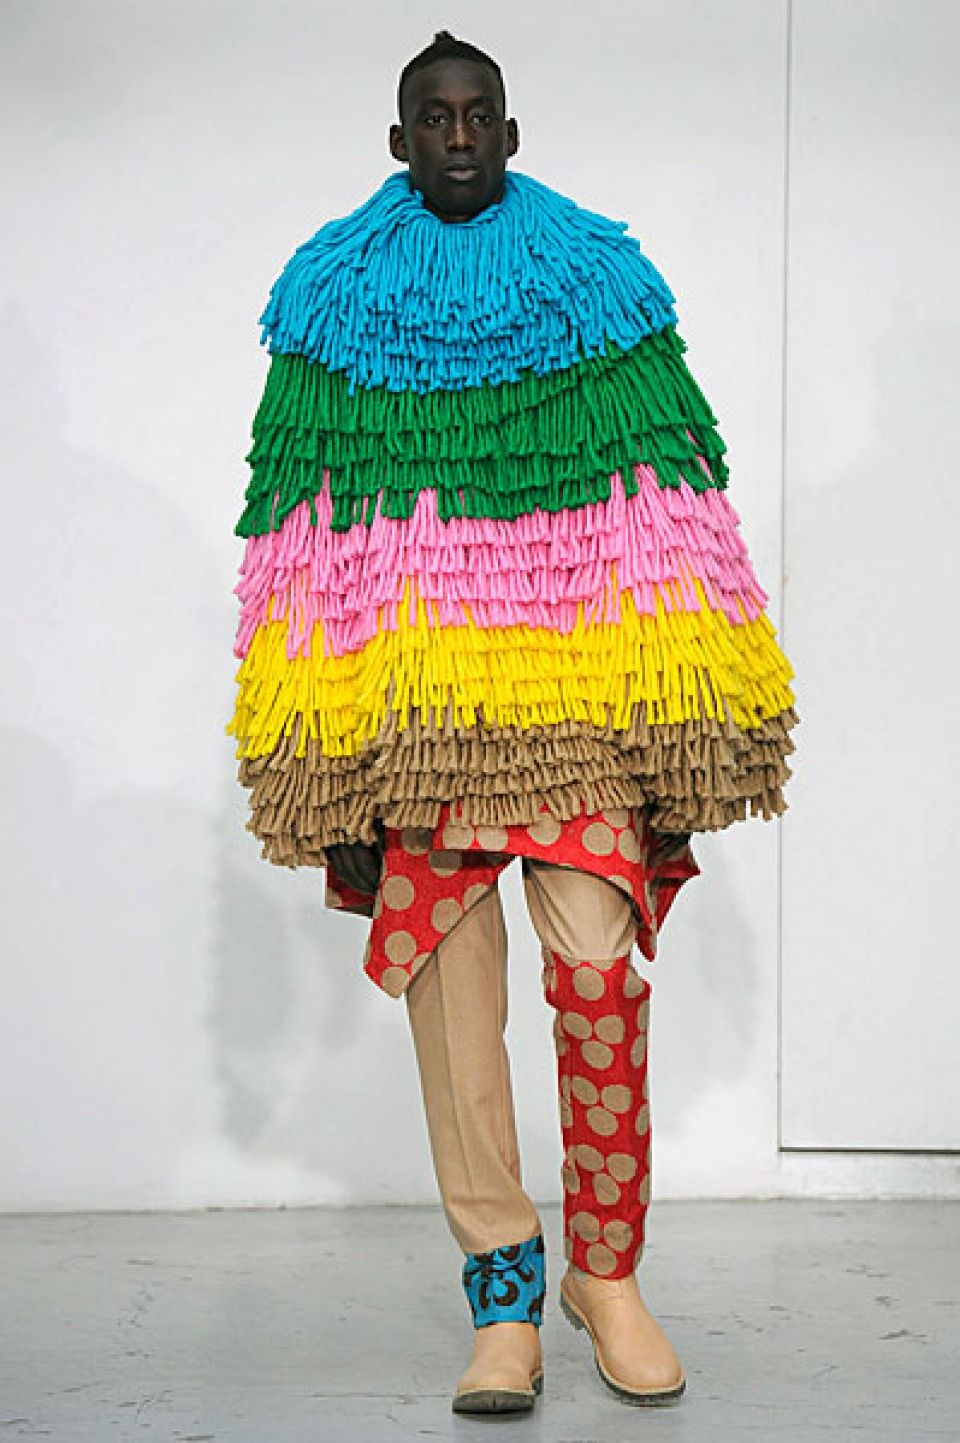 Nightmares knitwear images